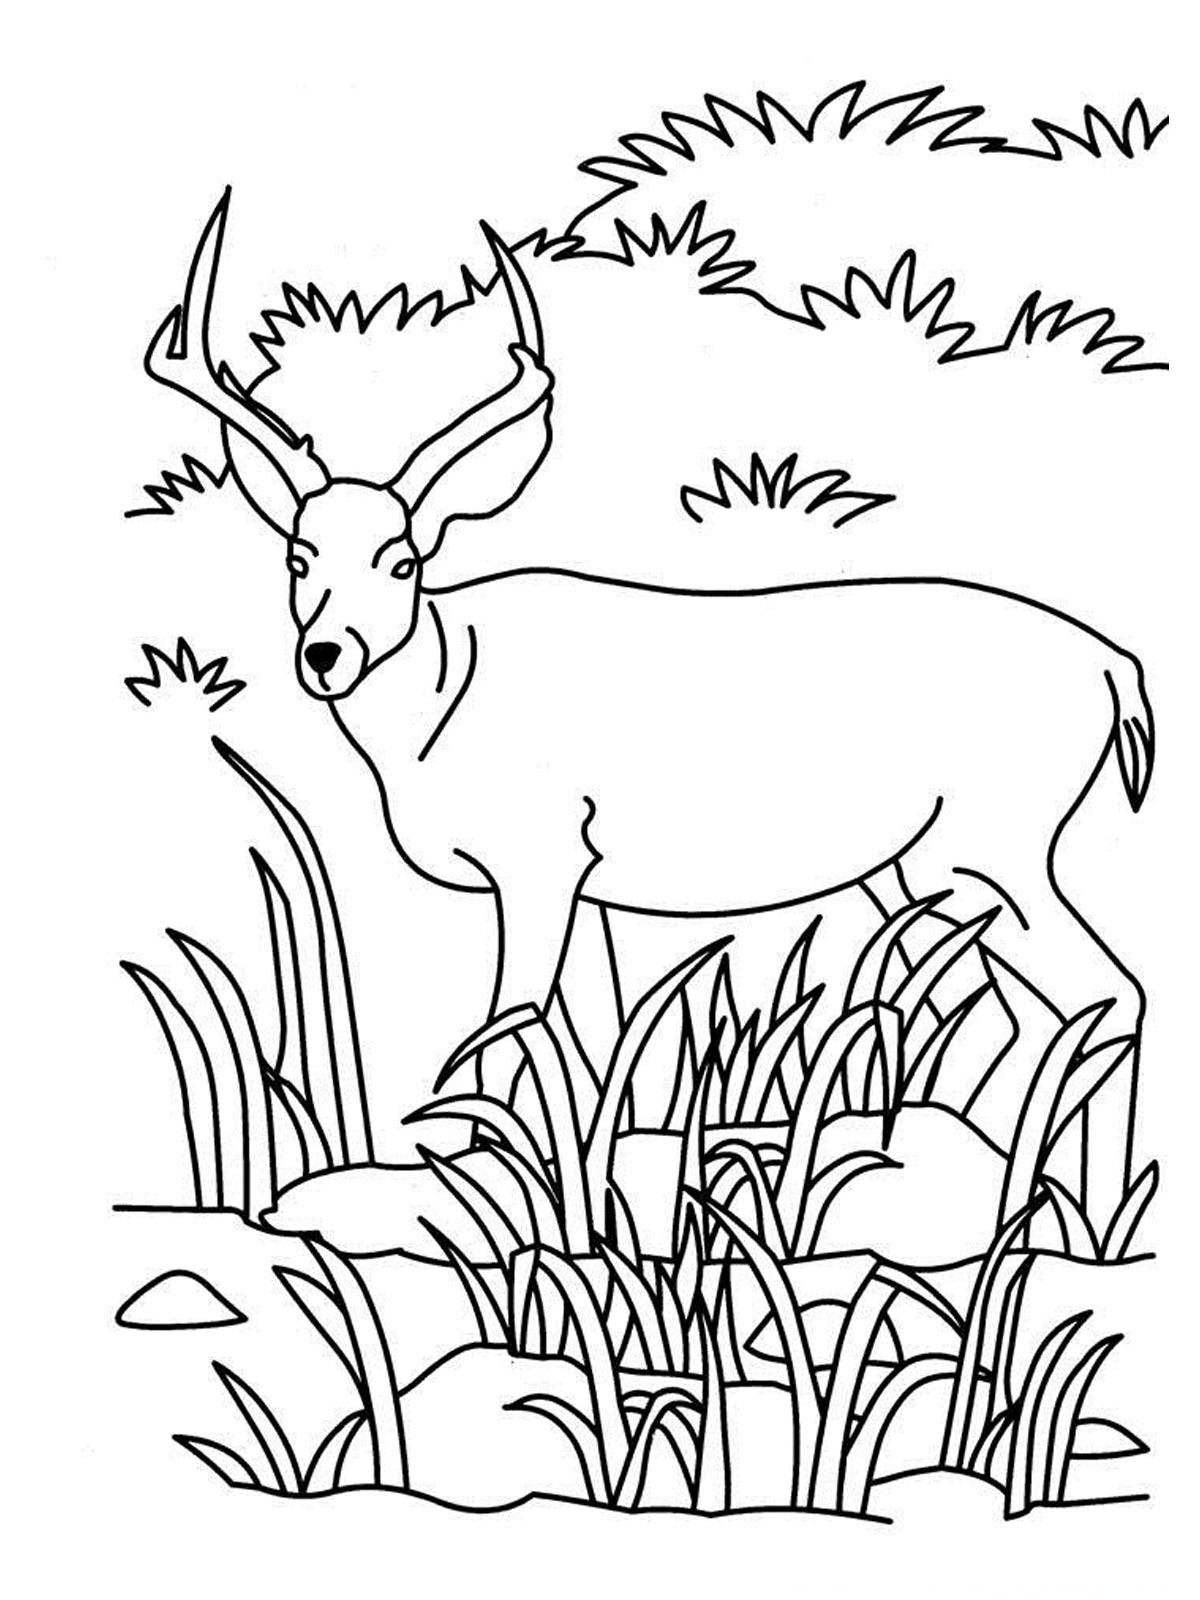 Realistic Forest Animal Coloring Pages on adult coloring pages for anxiety